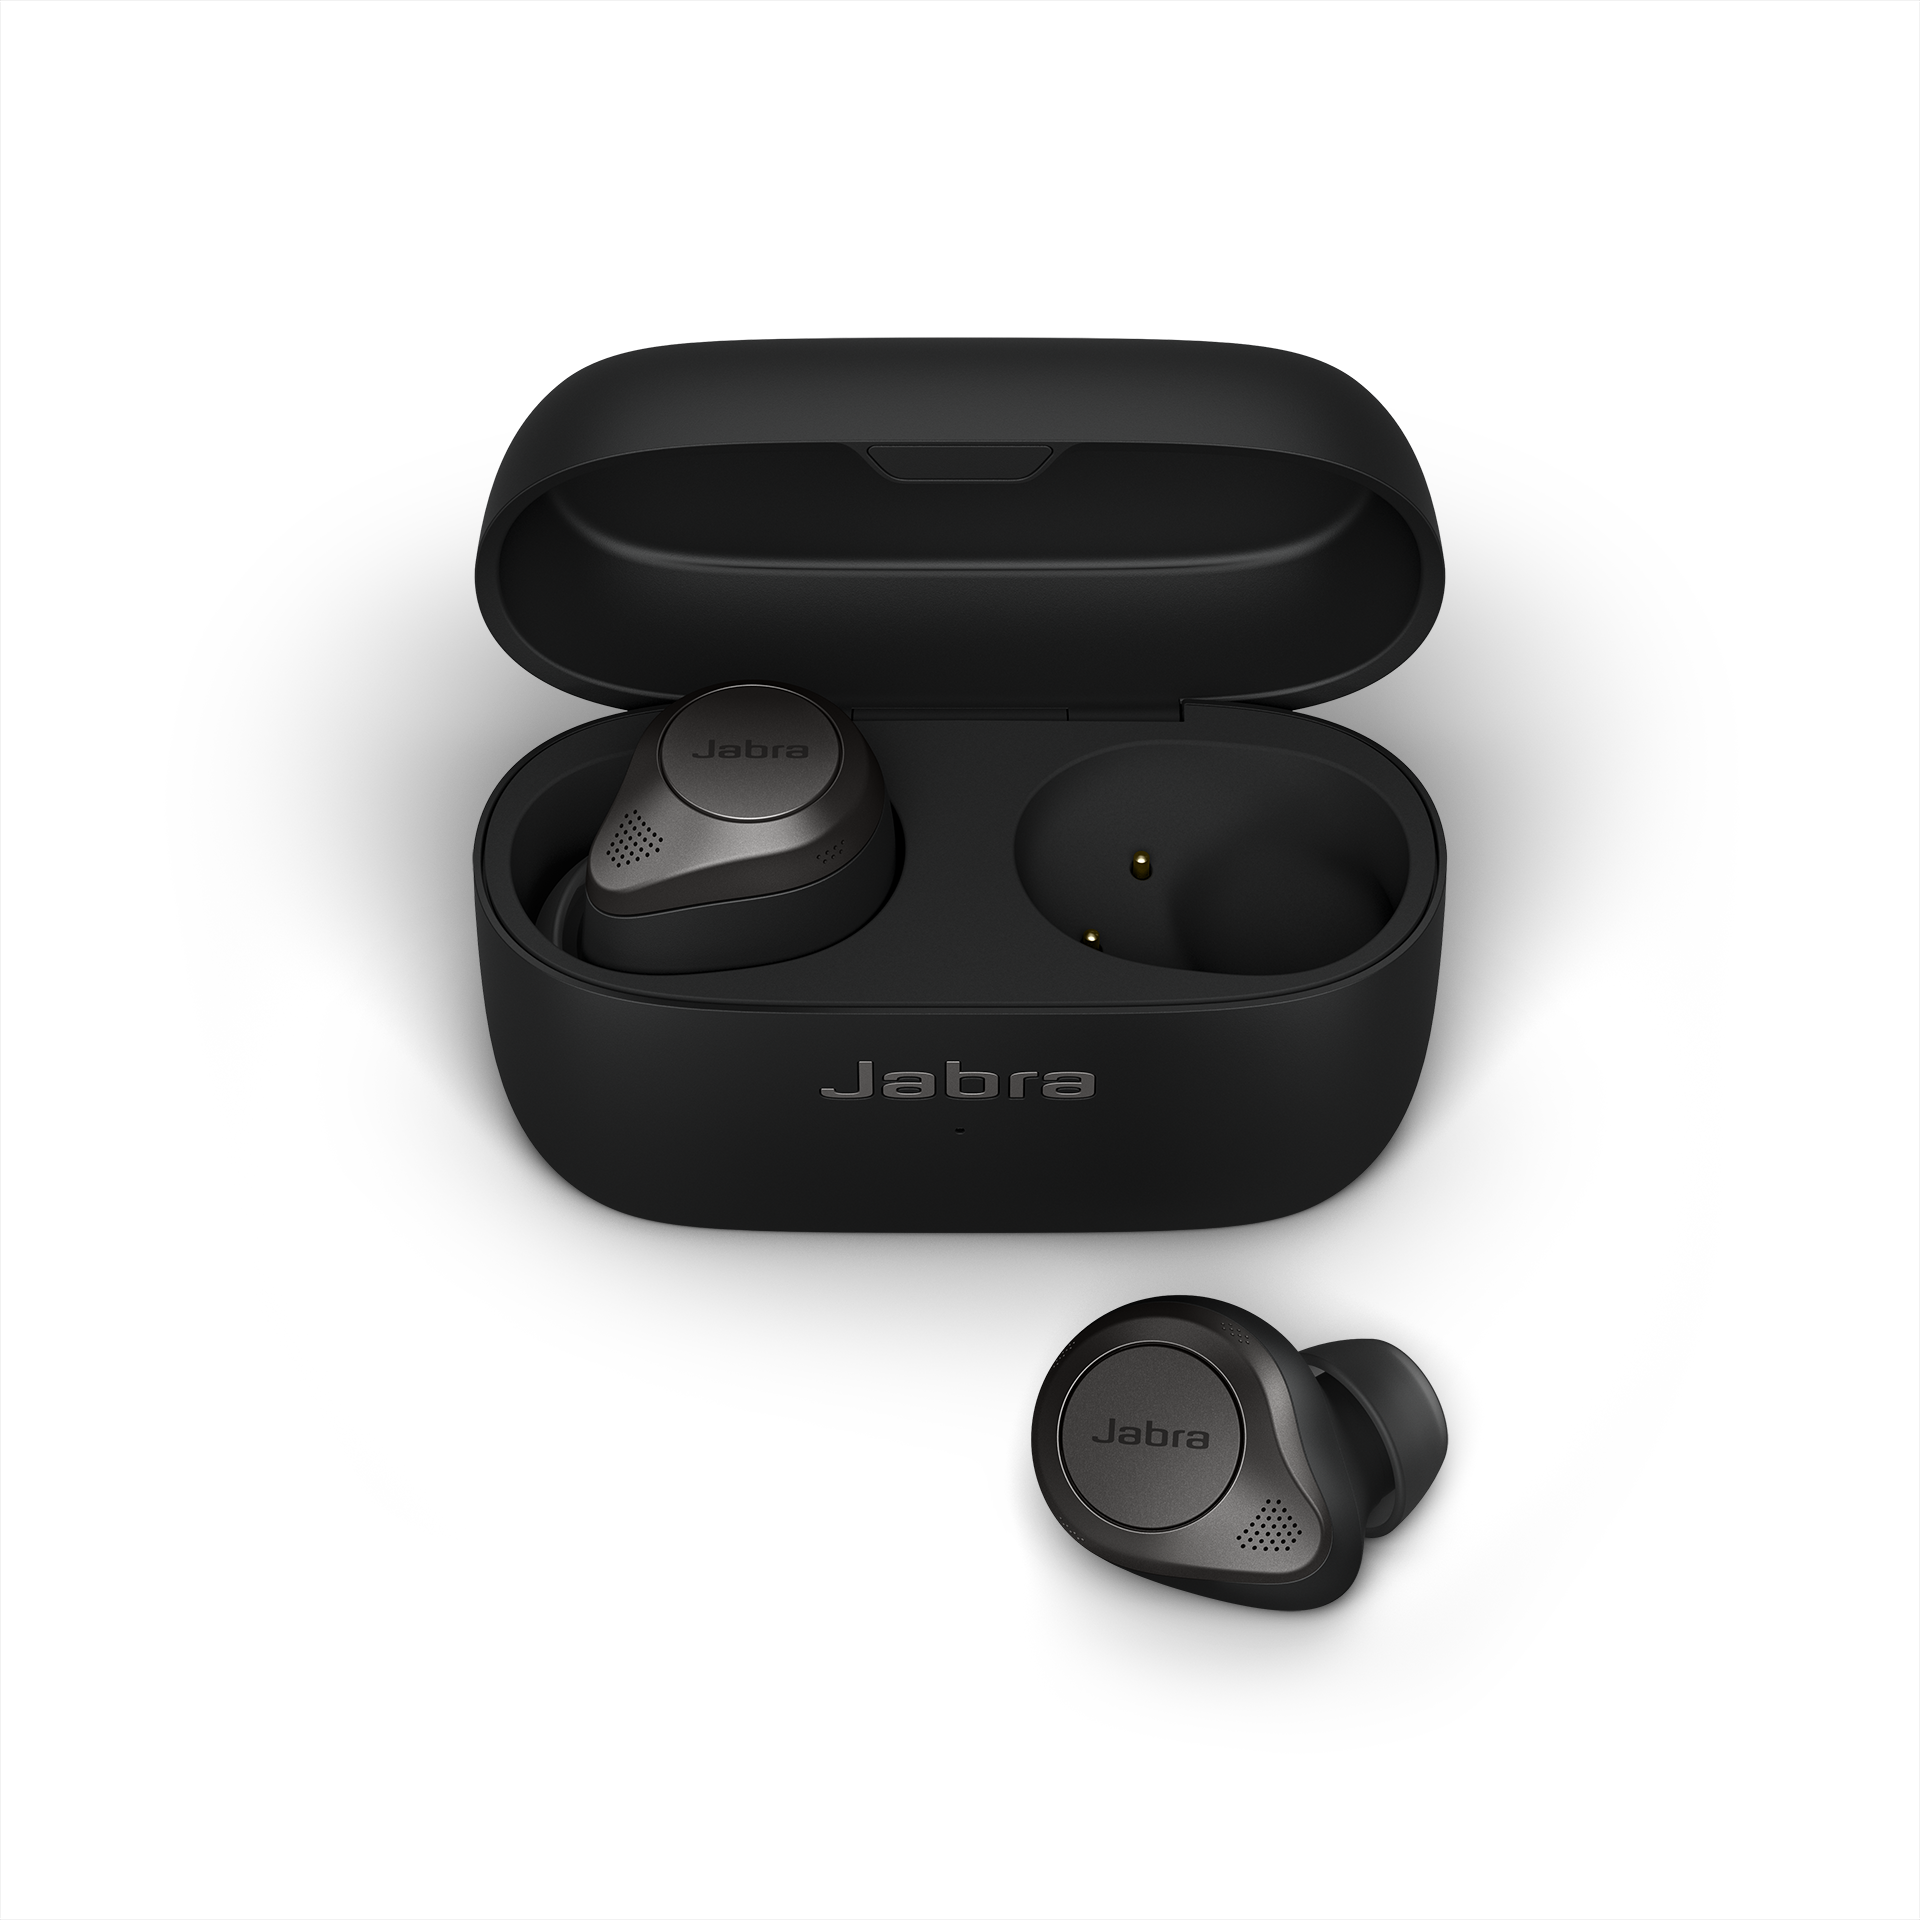 Jabra Elite 85t True Wireless Earbuds - Jabra Advanced Active Noise Cancellation with Long Battery Life and Powerful Speakers - Wireless Charging Case - Titanium Black